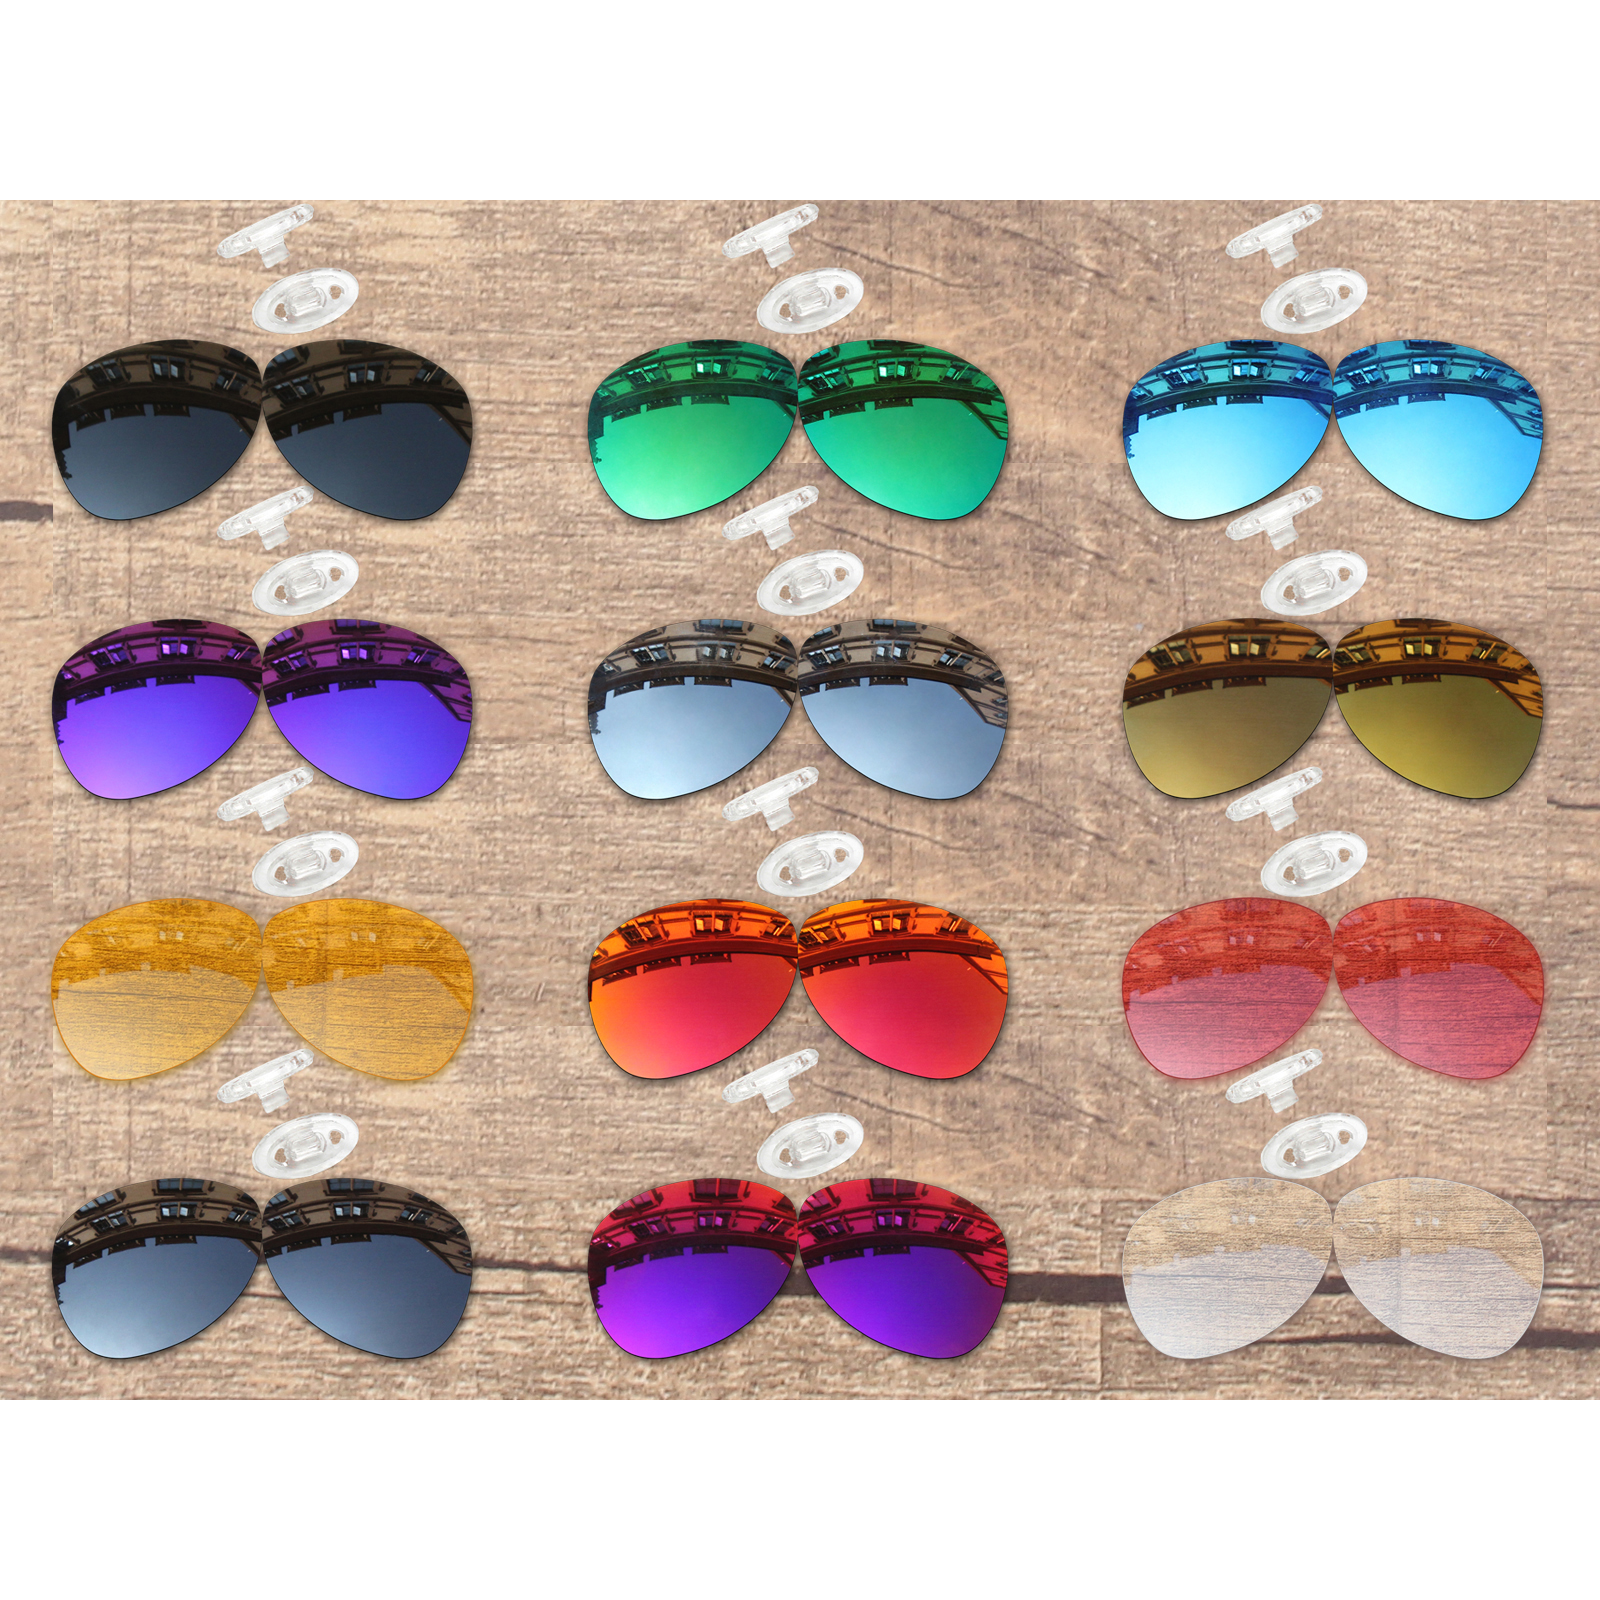 Vonxyz 20+ Color Choices Polarized Replacement Lenses & White Nose Pads For-Oakley Plaintiff OO4057 Frame